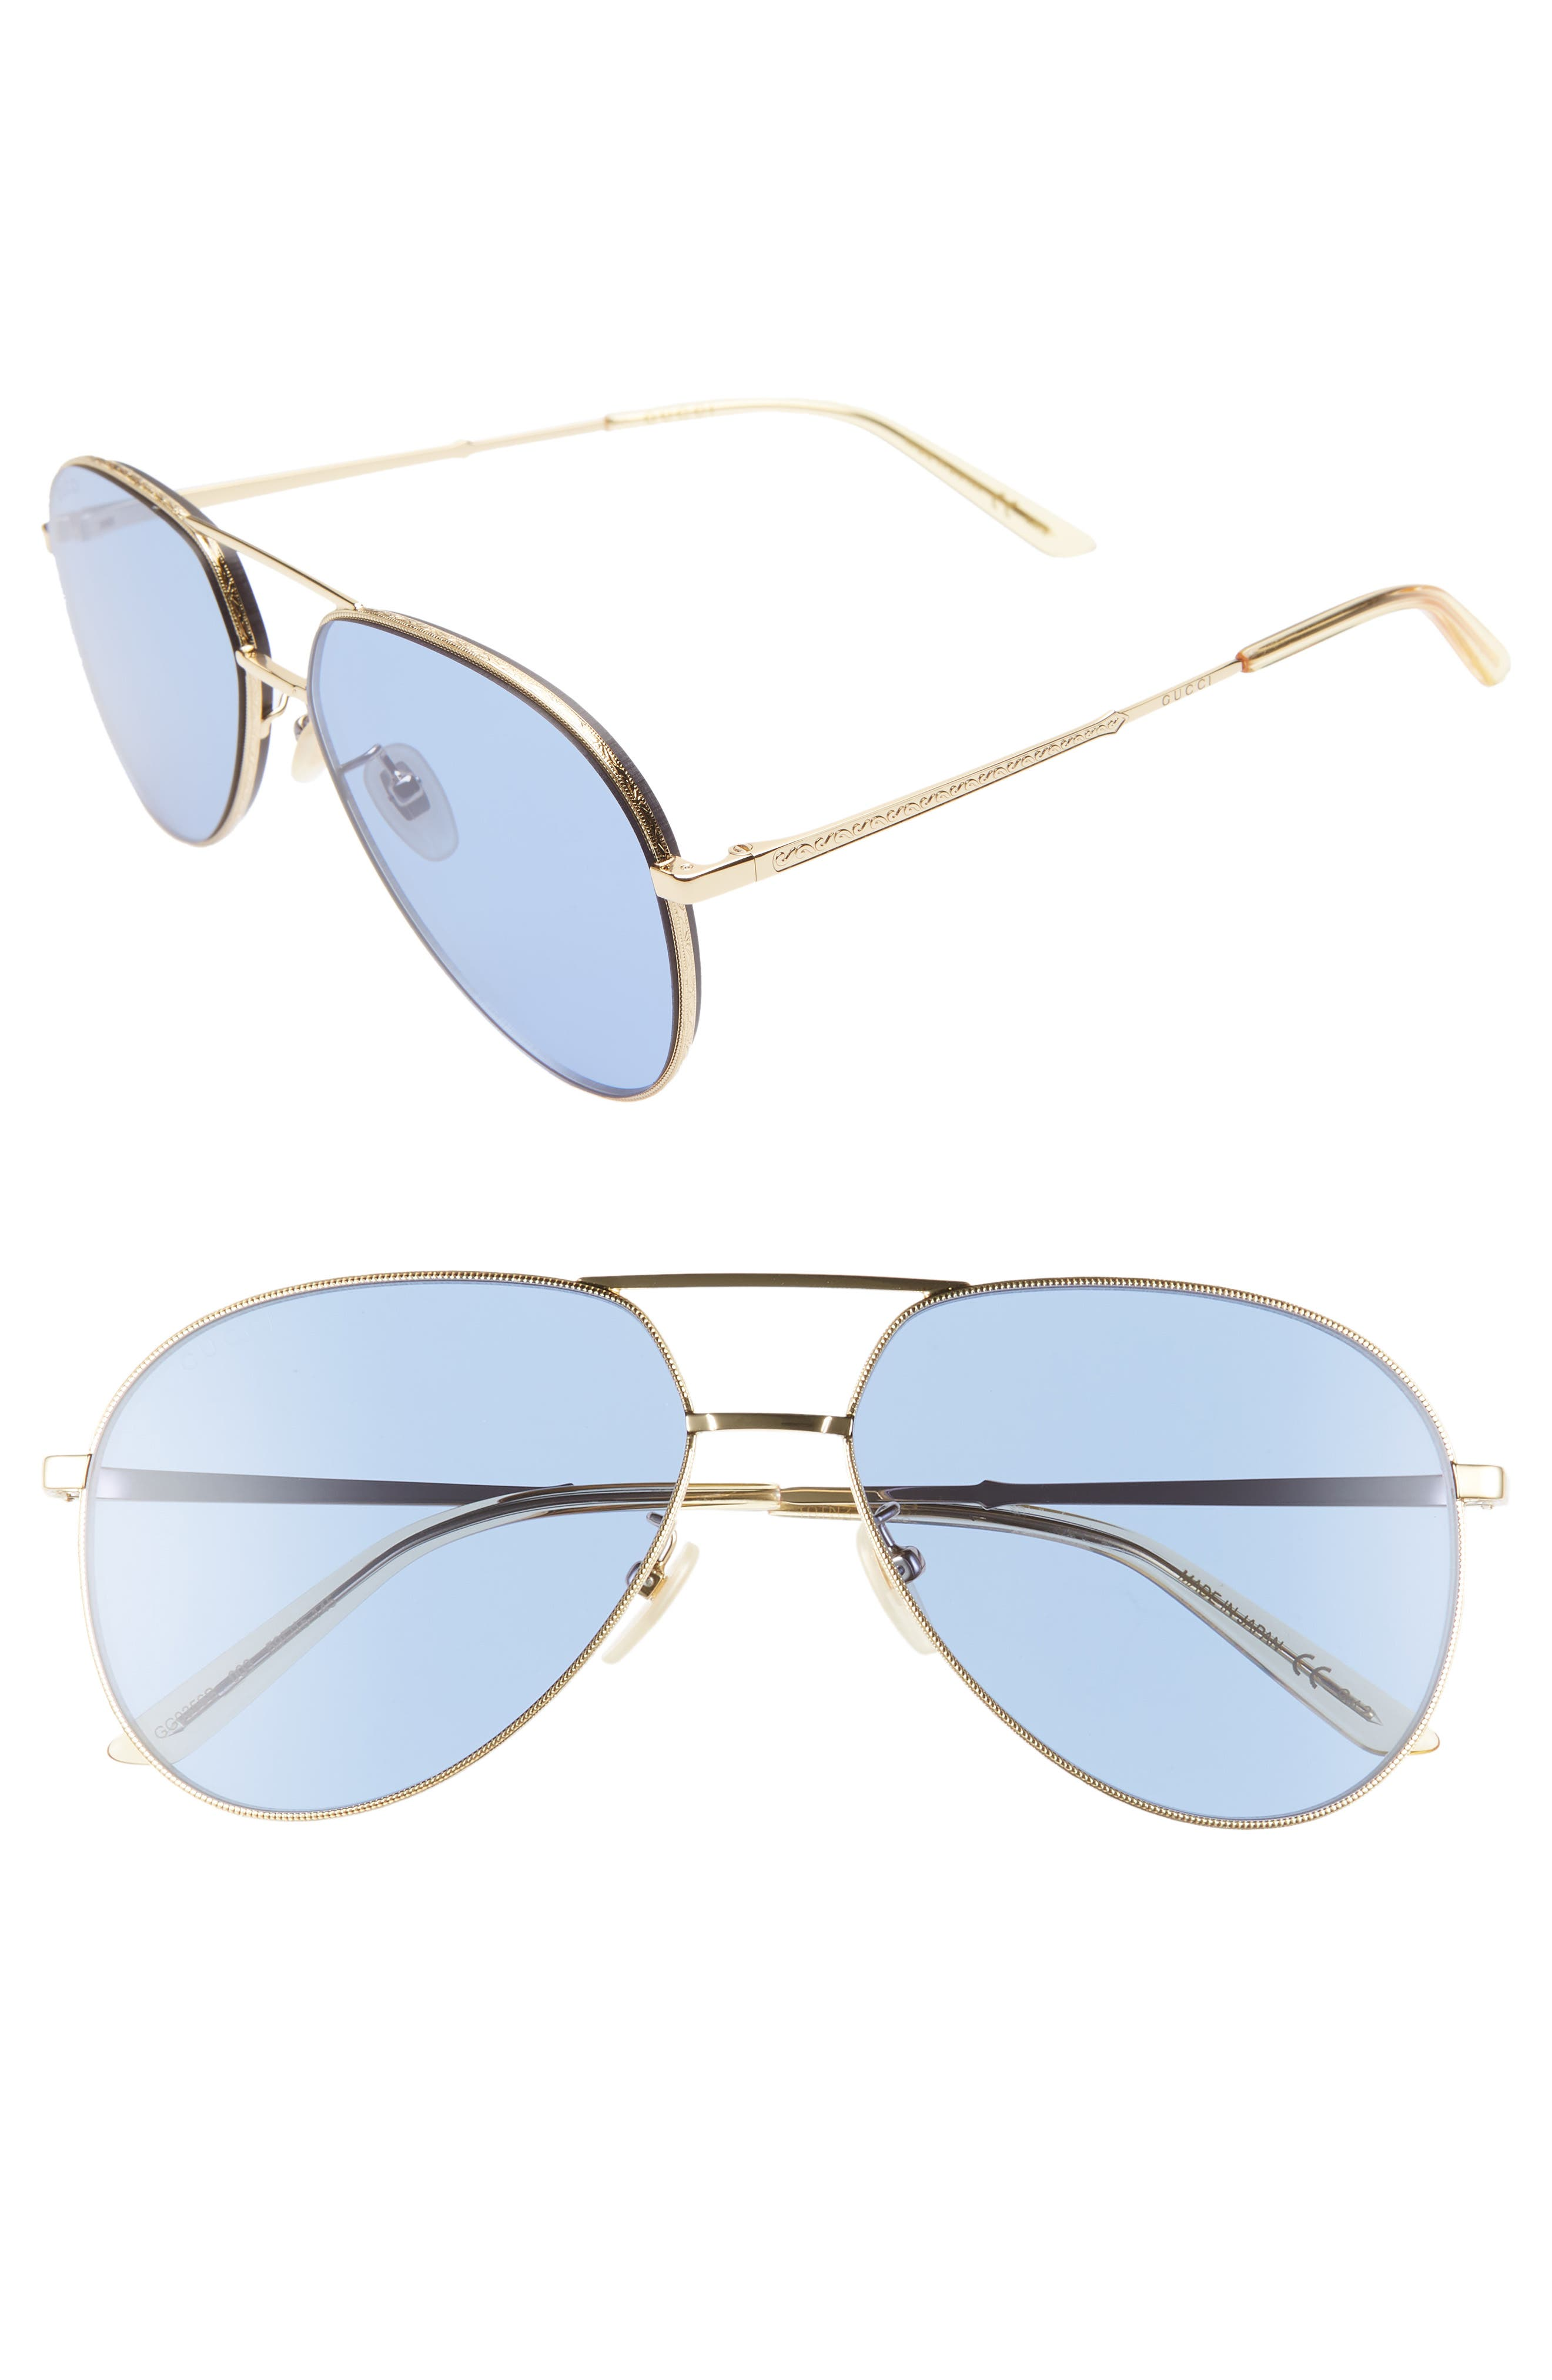 59mm Metal Aviator Sunglasses,                         Main,                         color, GOLD/ BLUE